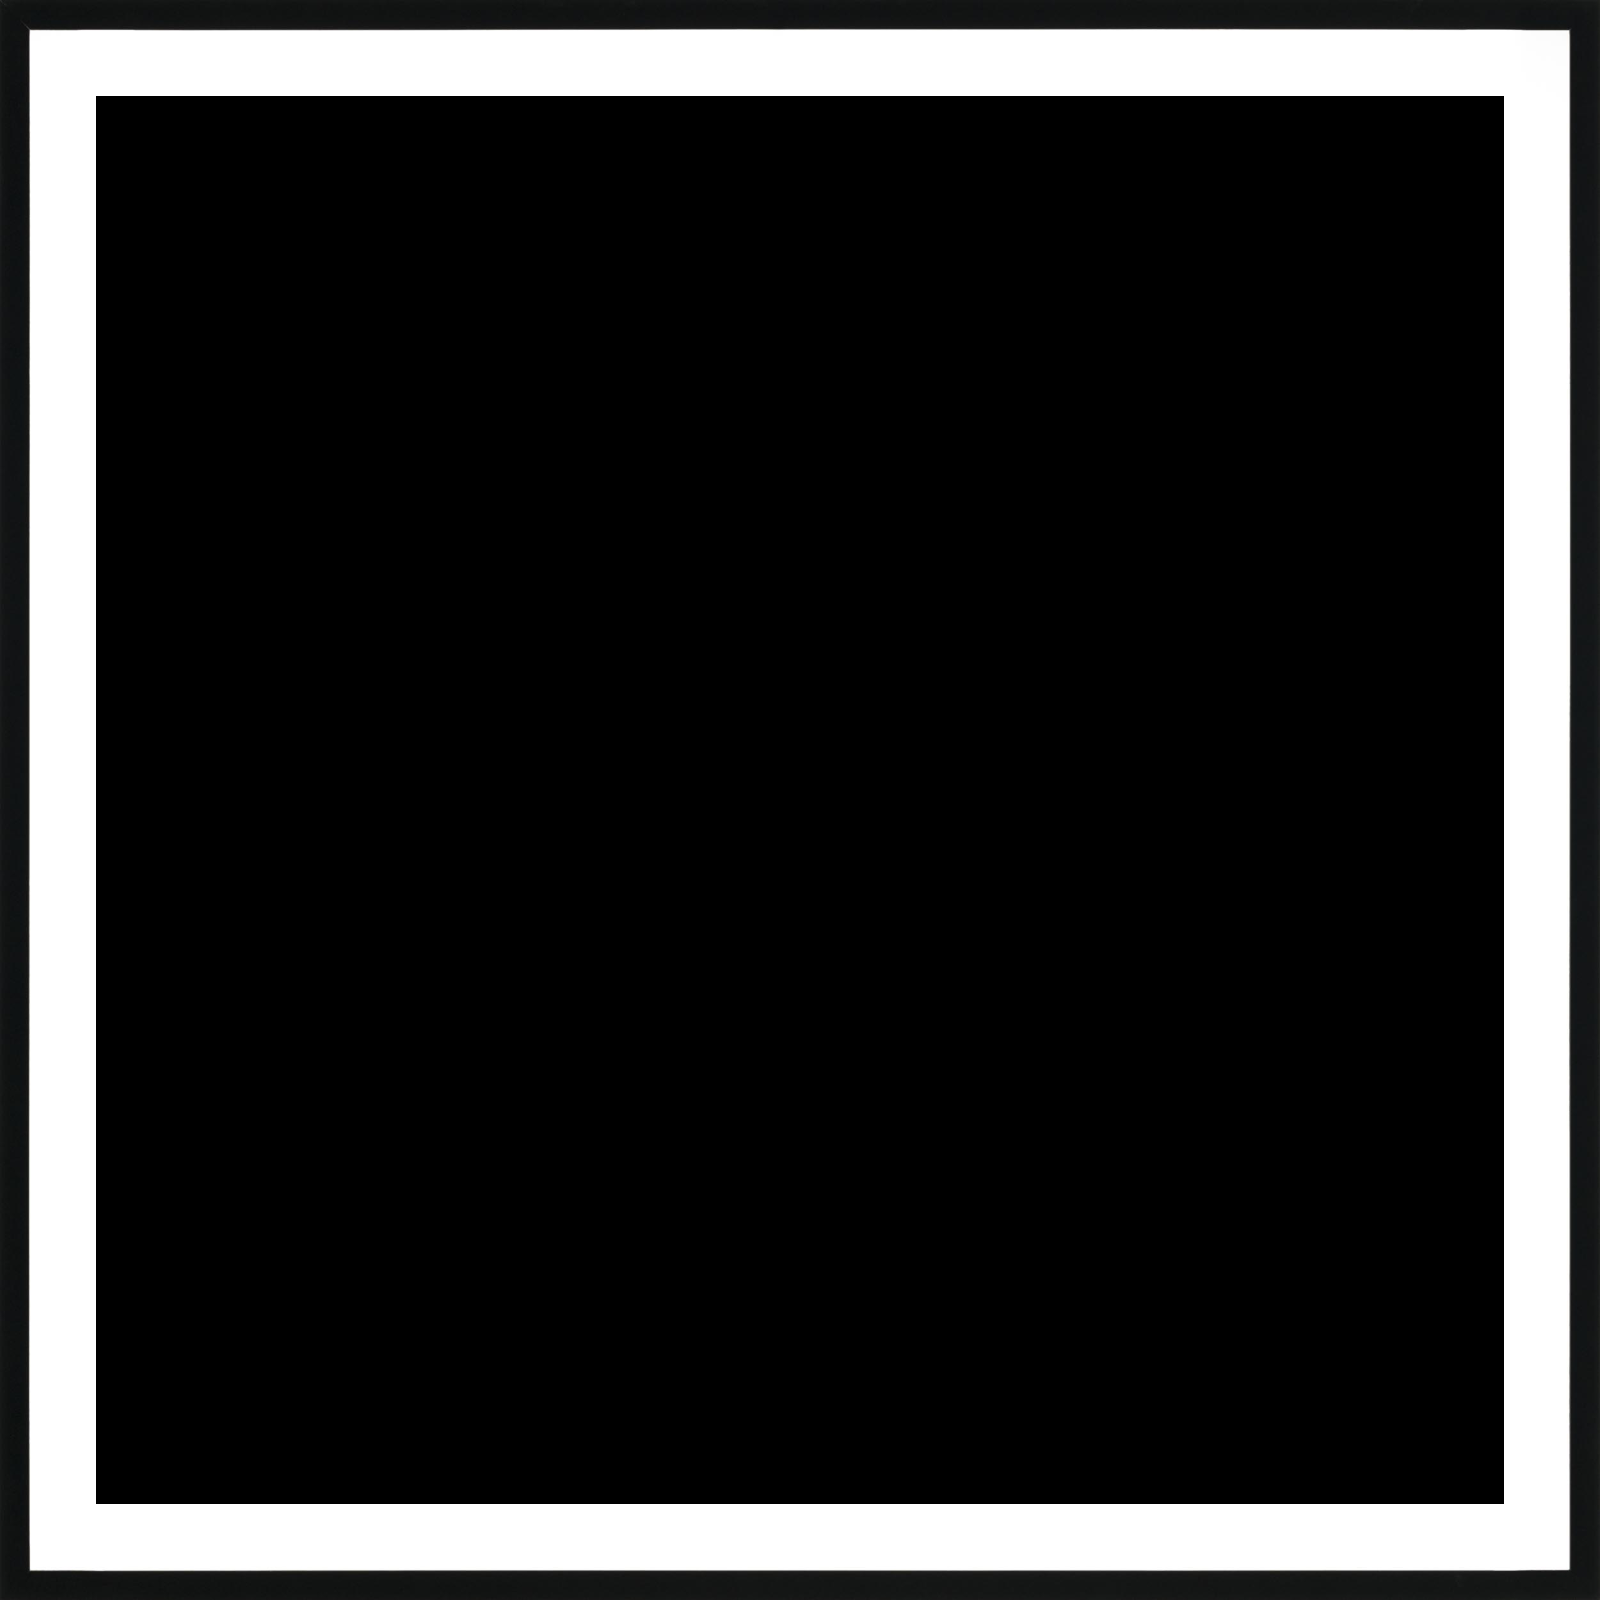 Paper Frame Square Black